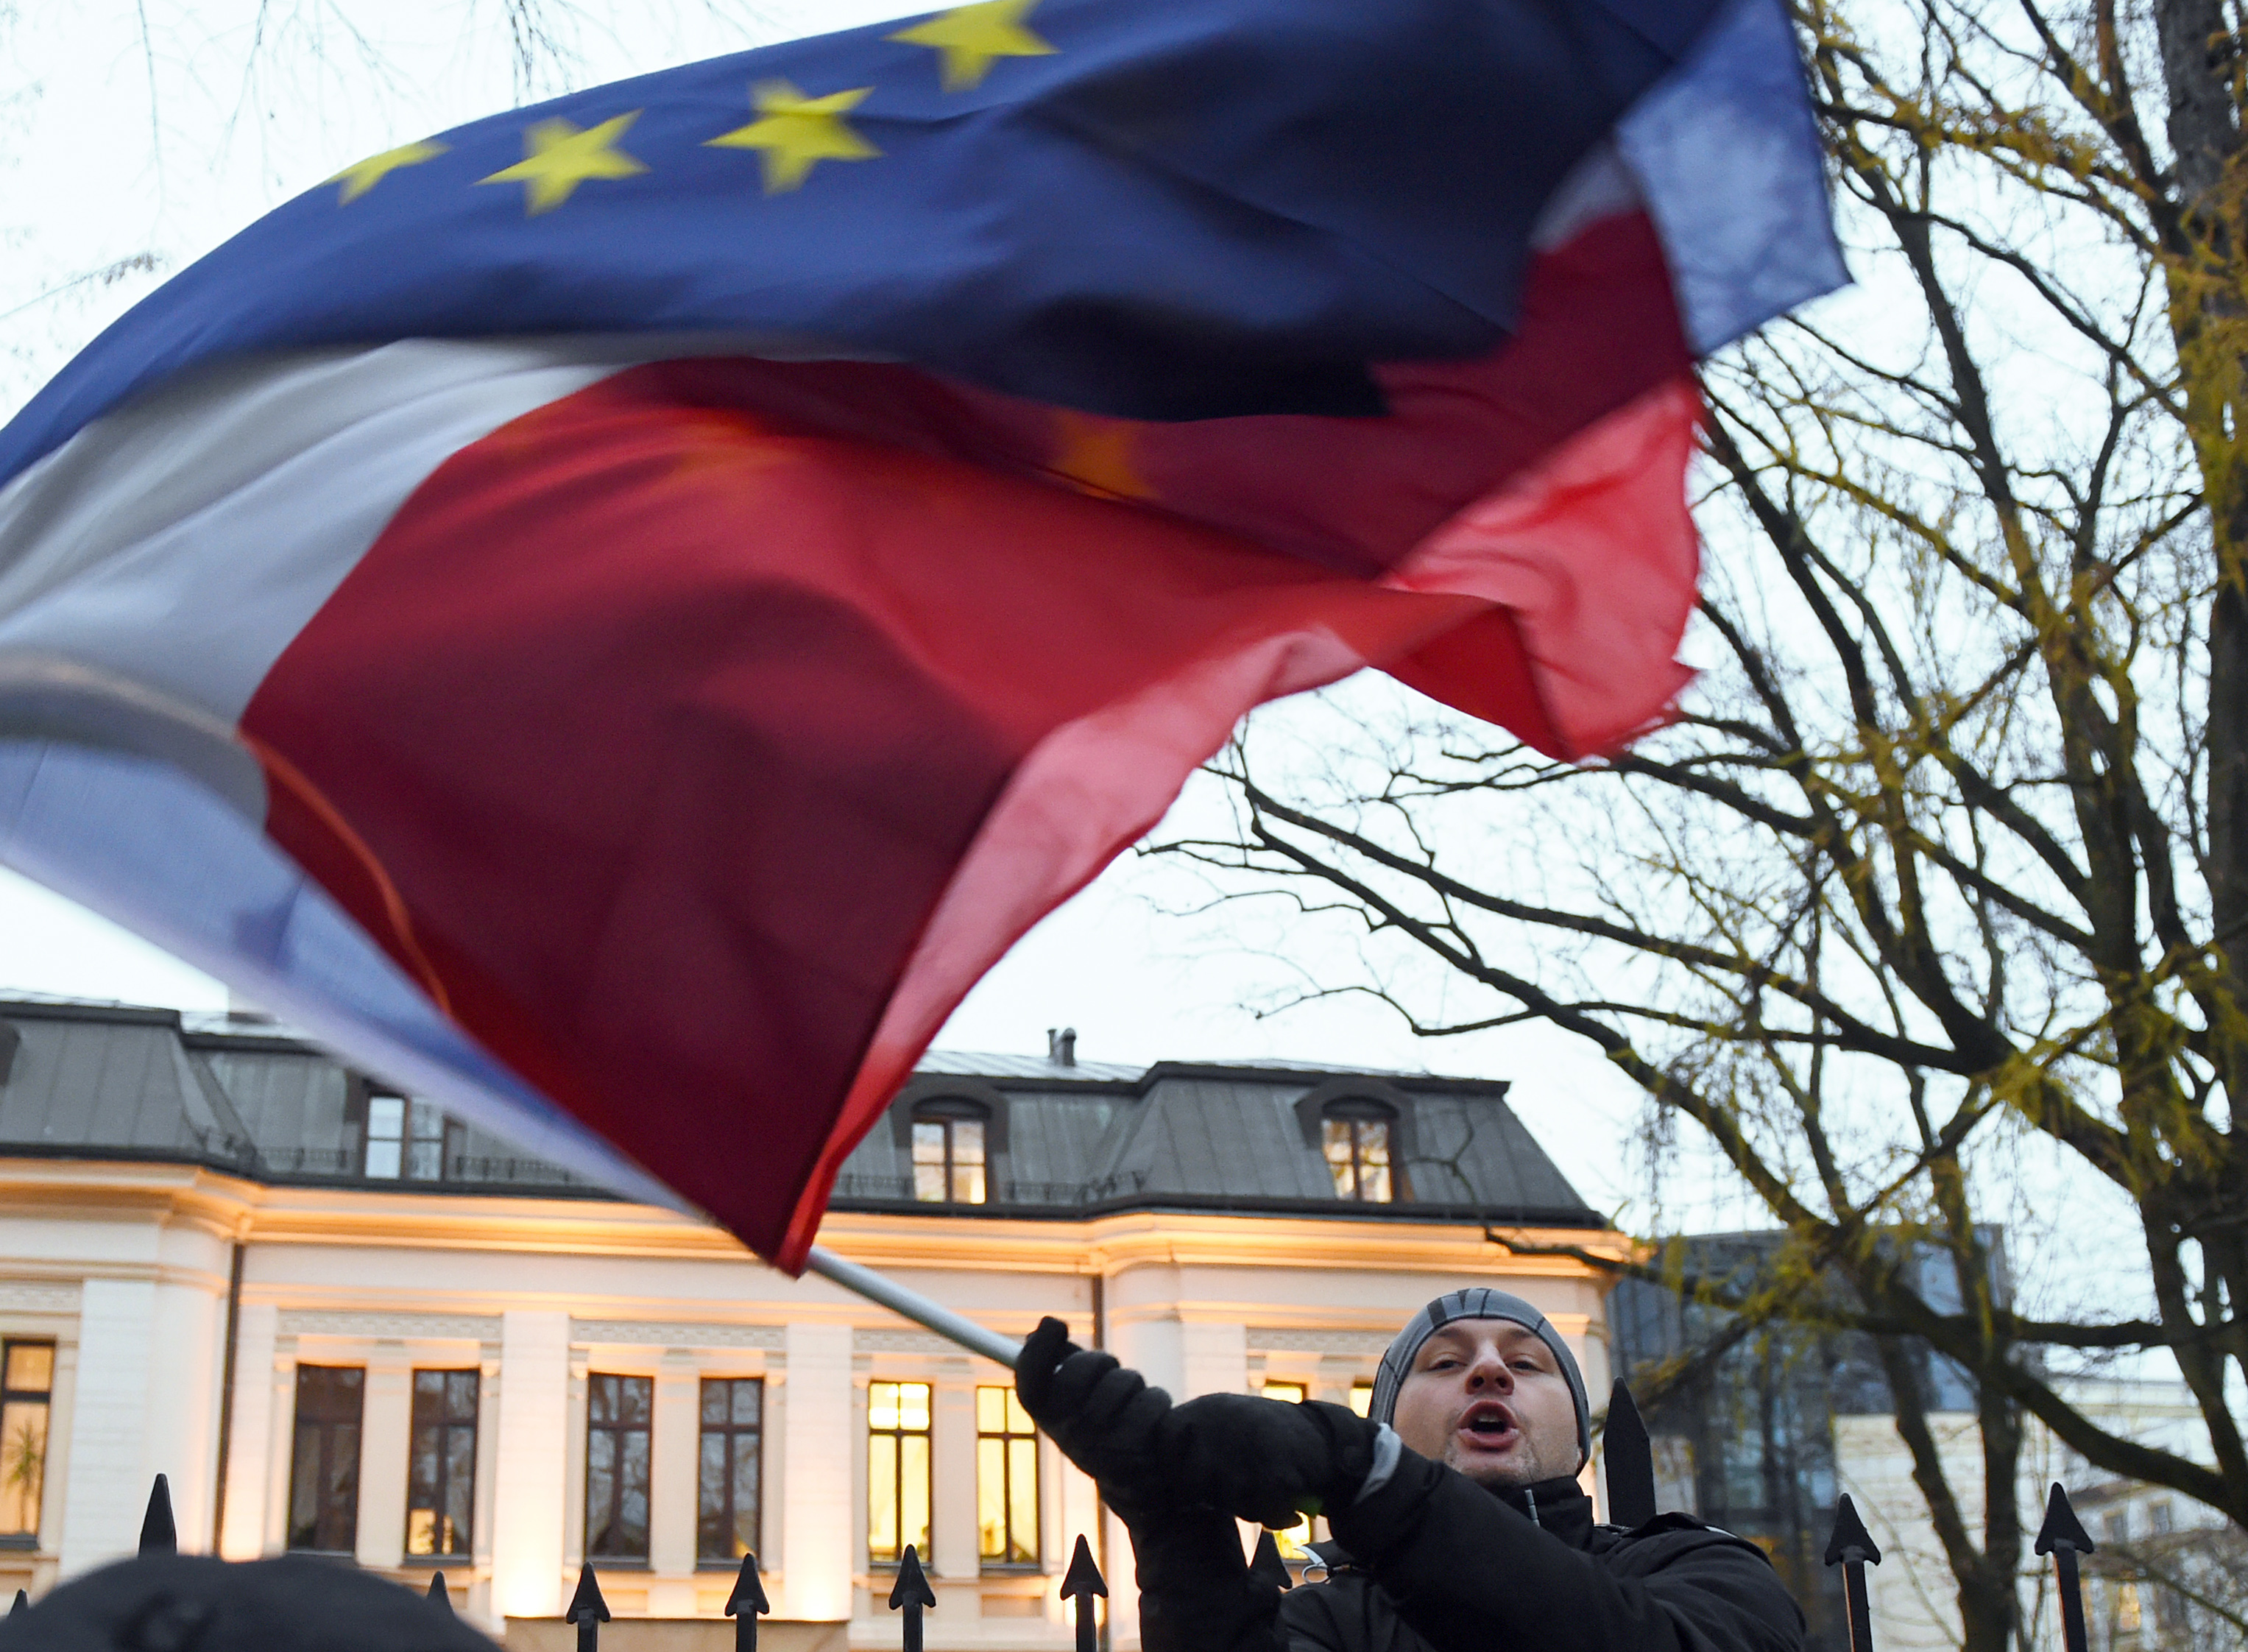 Protester waves flags of Poland and the European Union in front of the Polish Constitutional Court in Warsaw on December 3, 2015.